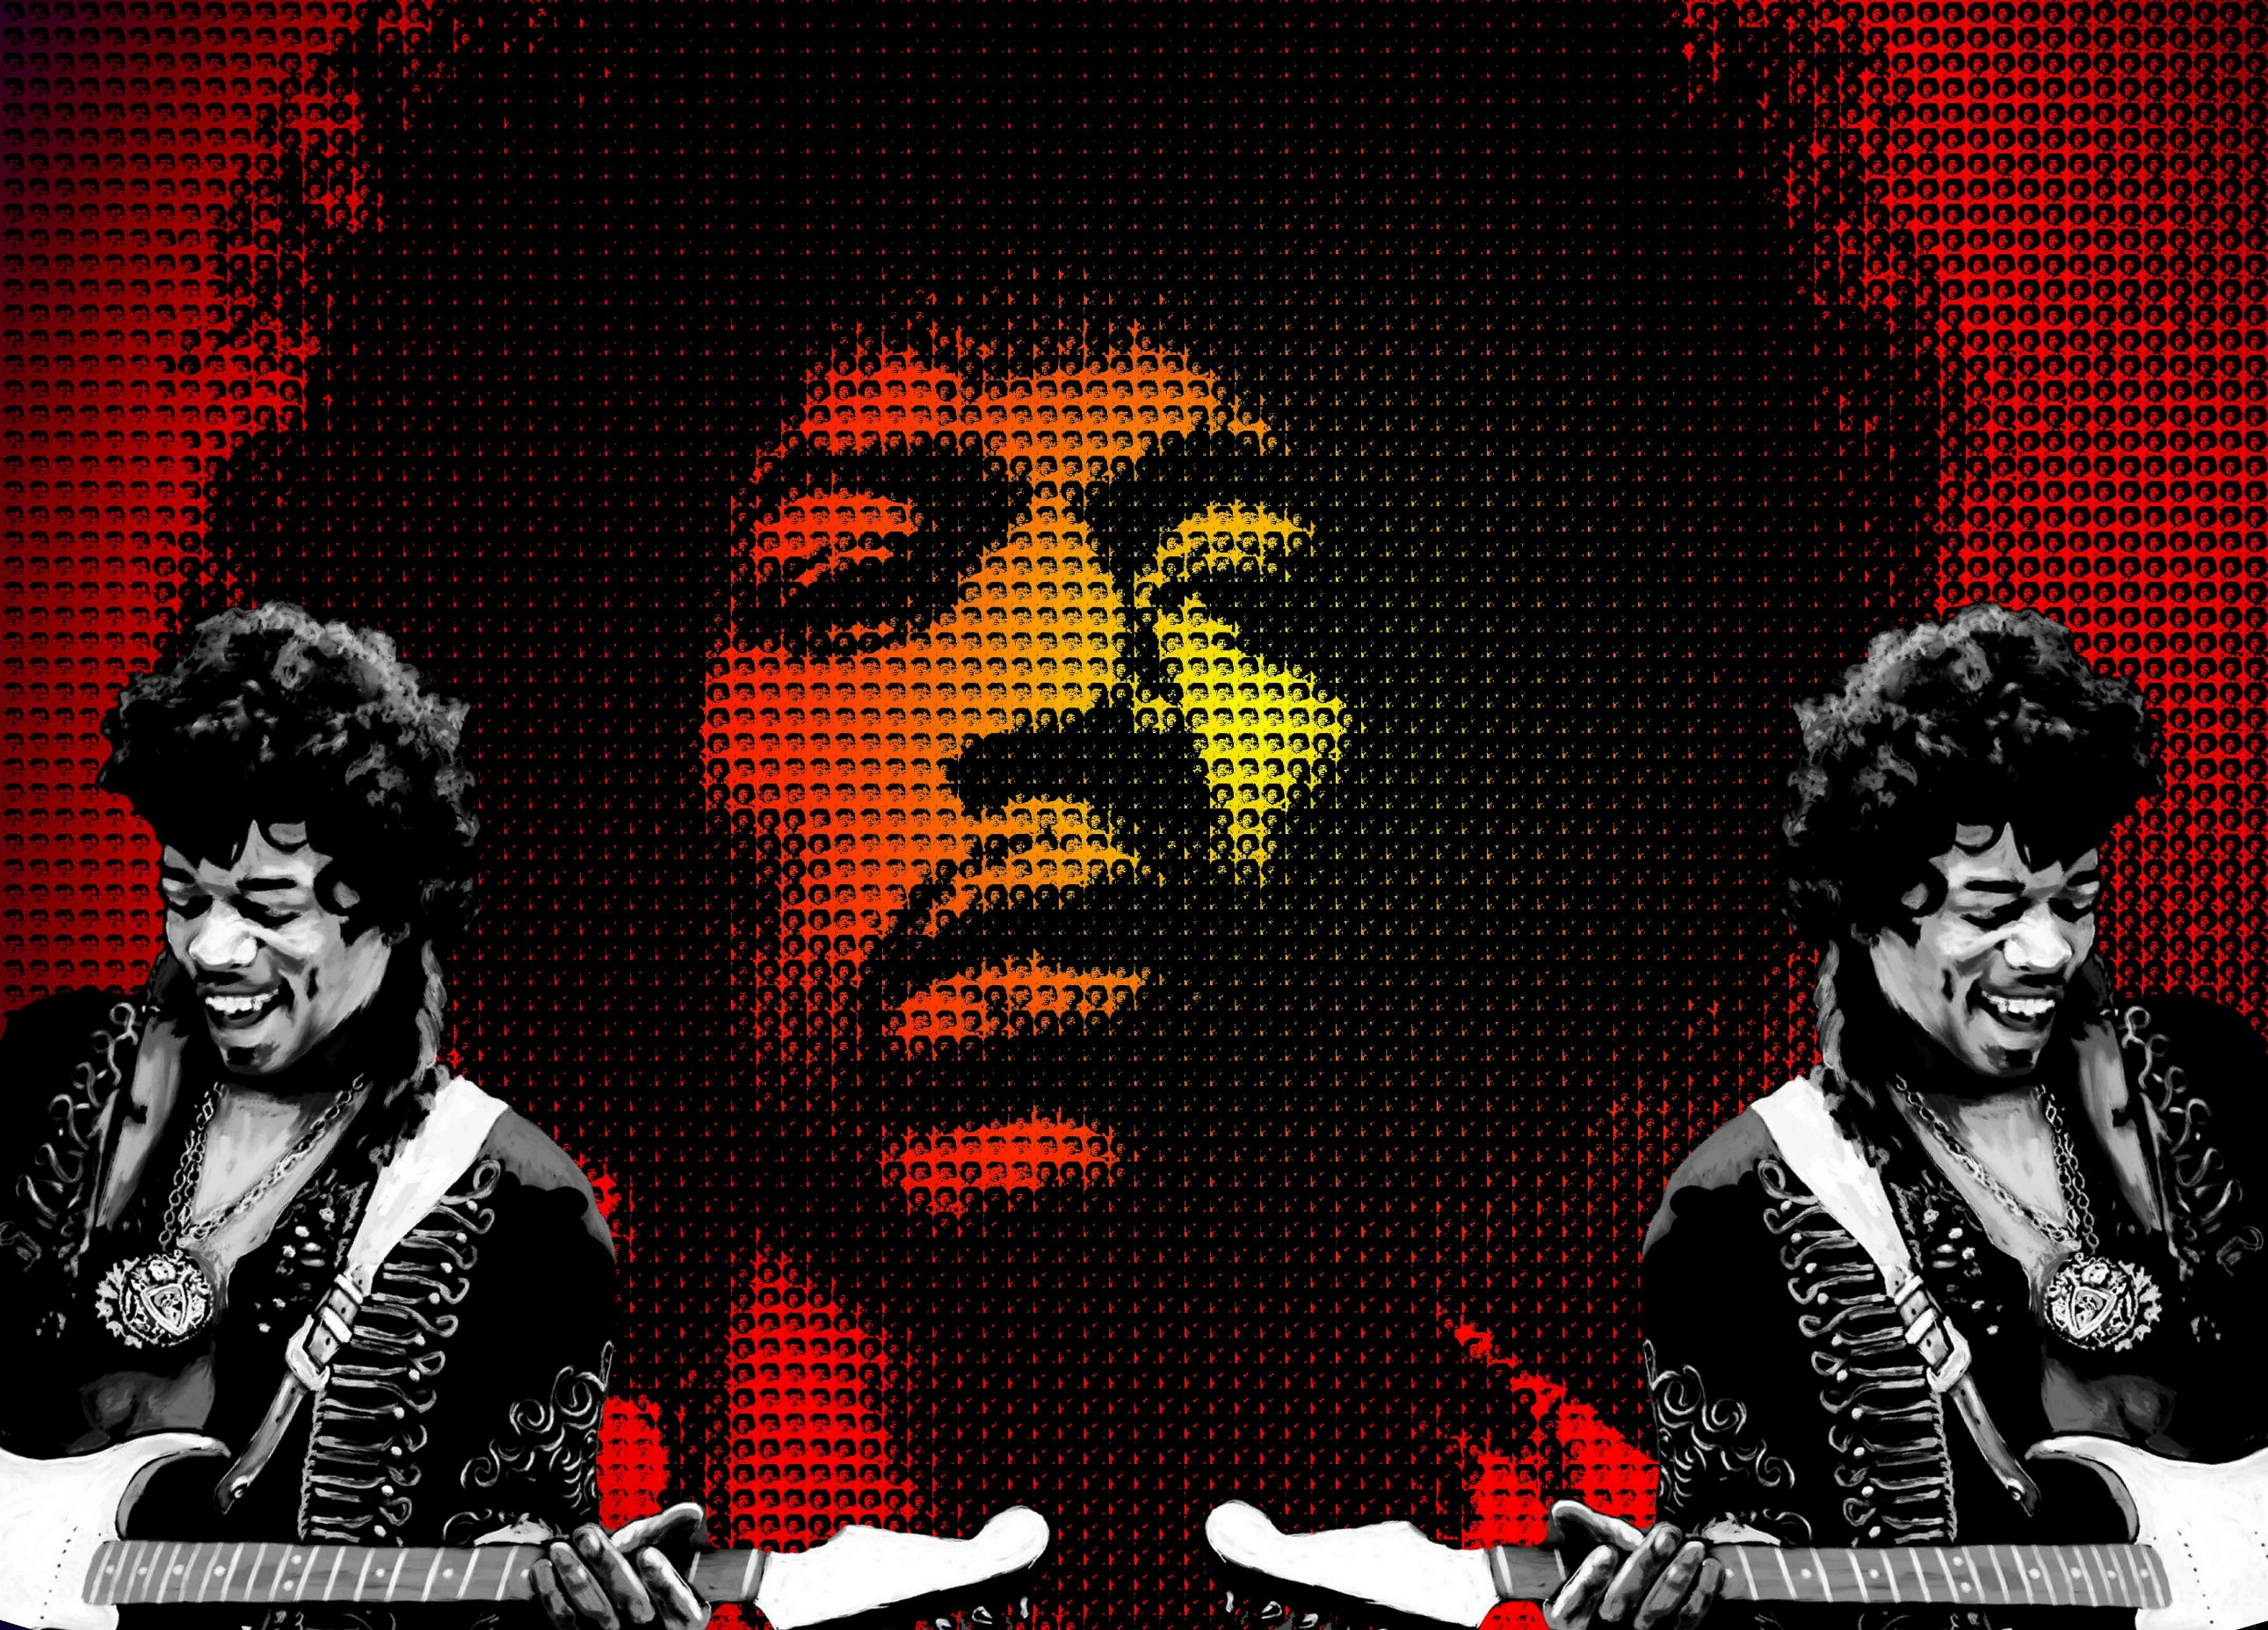 Jimi hendrix wallpapers pictures images jimi hendrix wallpaper altavistaventures Choice Image